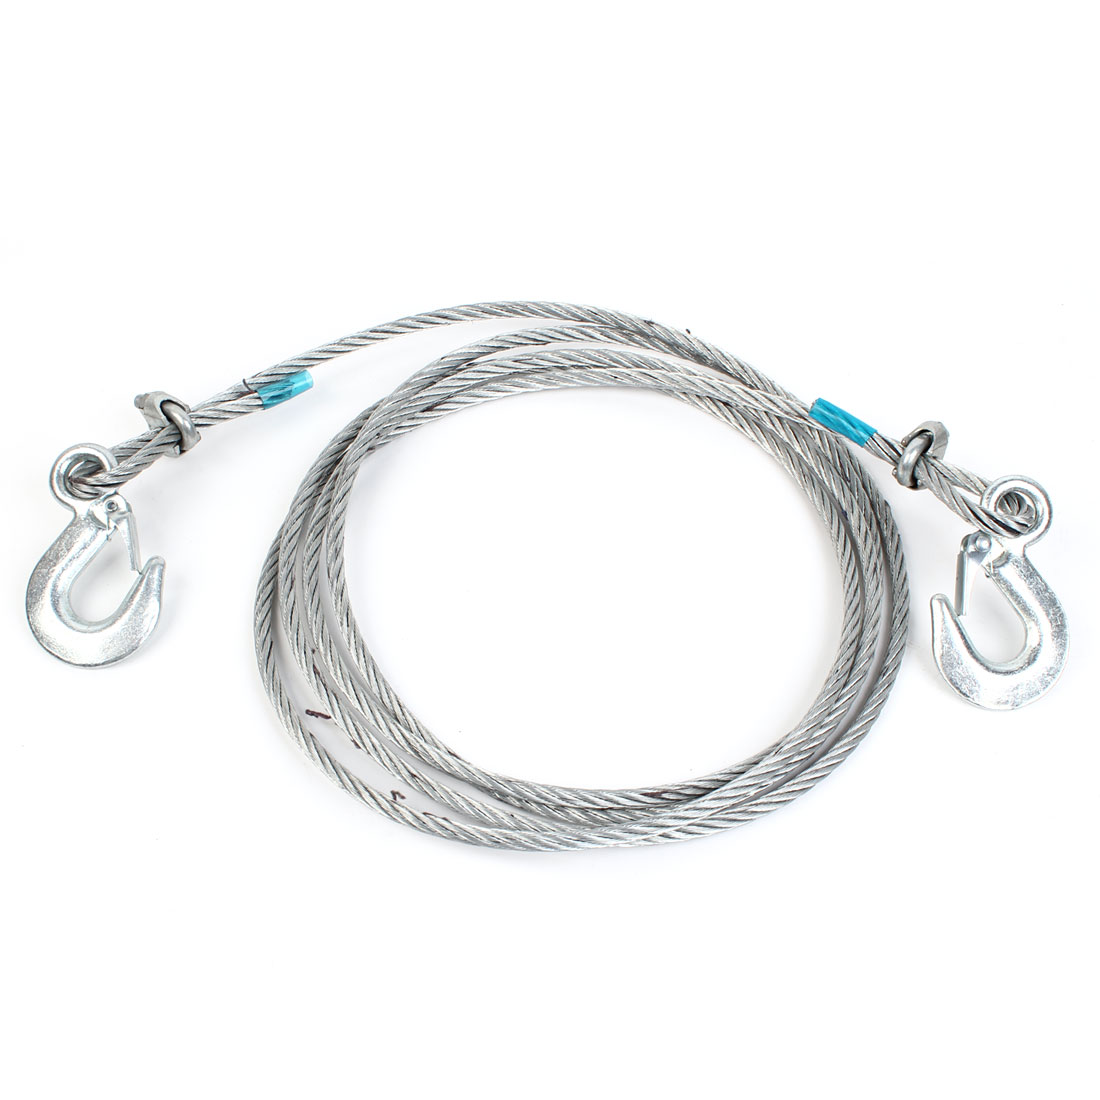 4M 5 Tons Car Steel Towing Cable Tow Rope Snatch Strap 10mm Dia Silver Tone